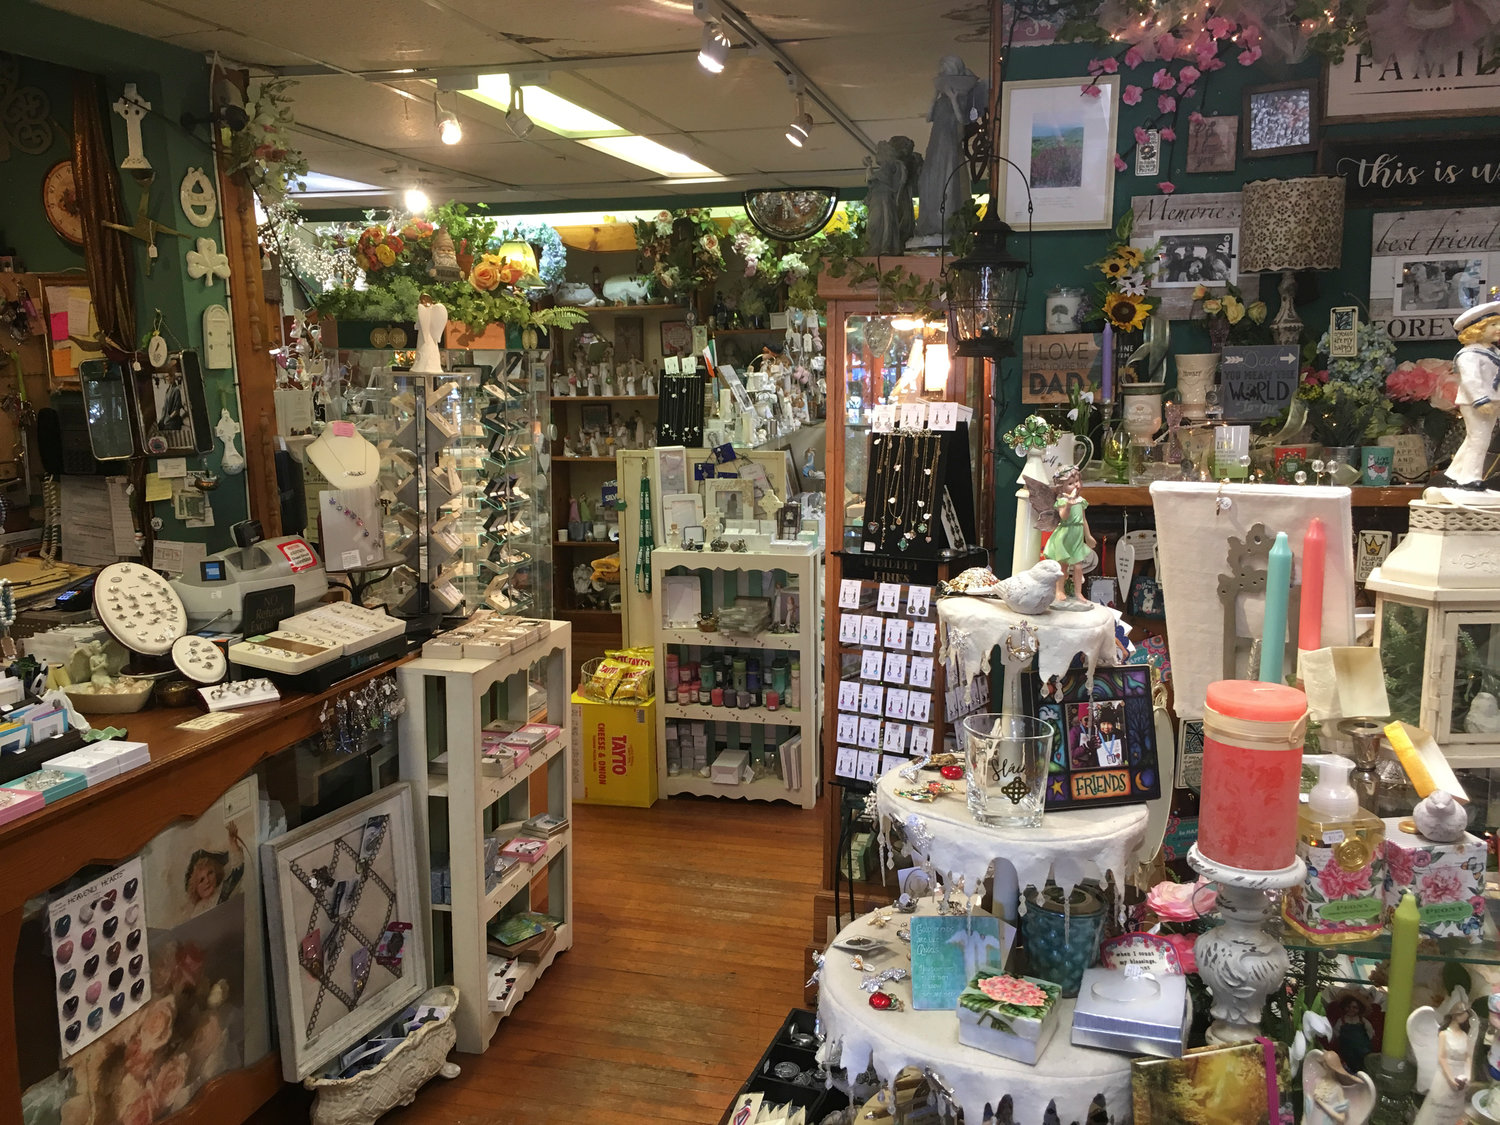 The shop's ground floor shows some of the treasures the owners have brought from Ireland.